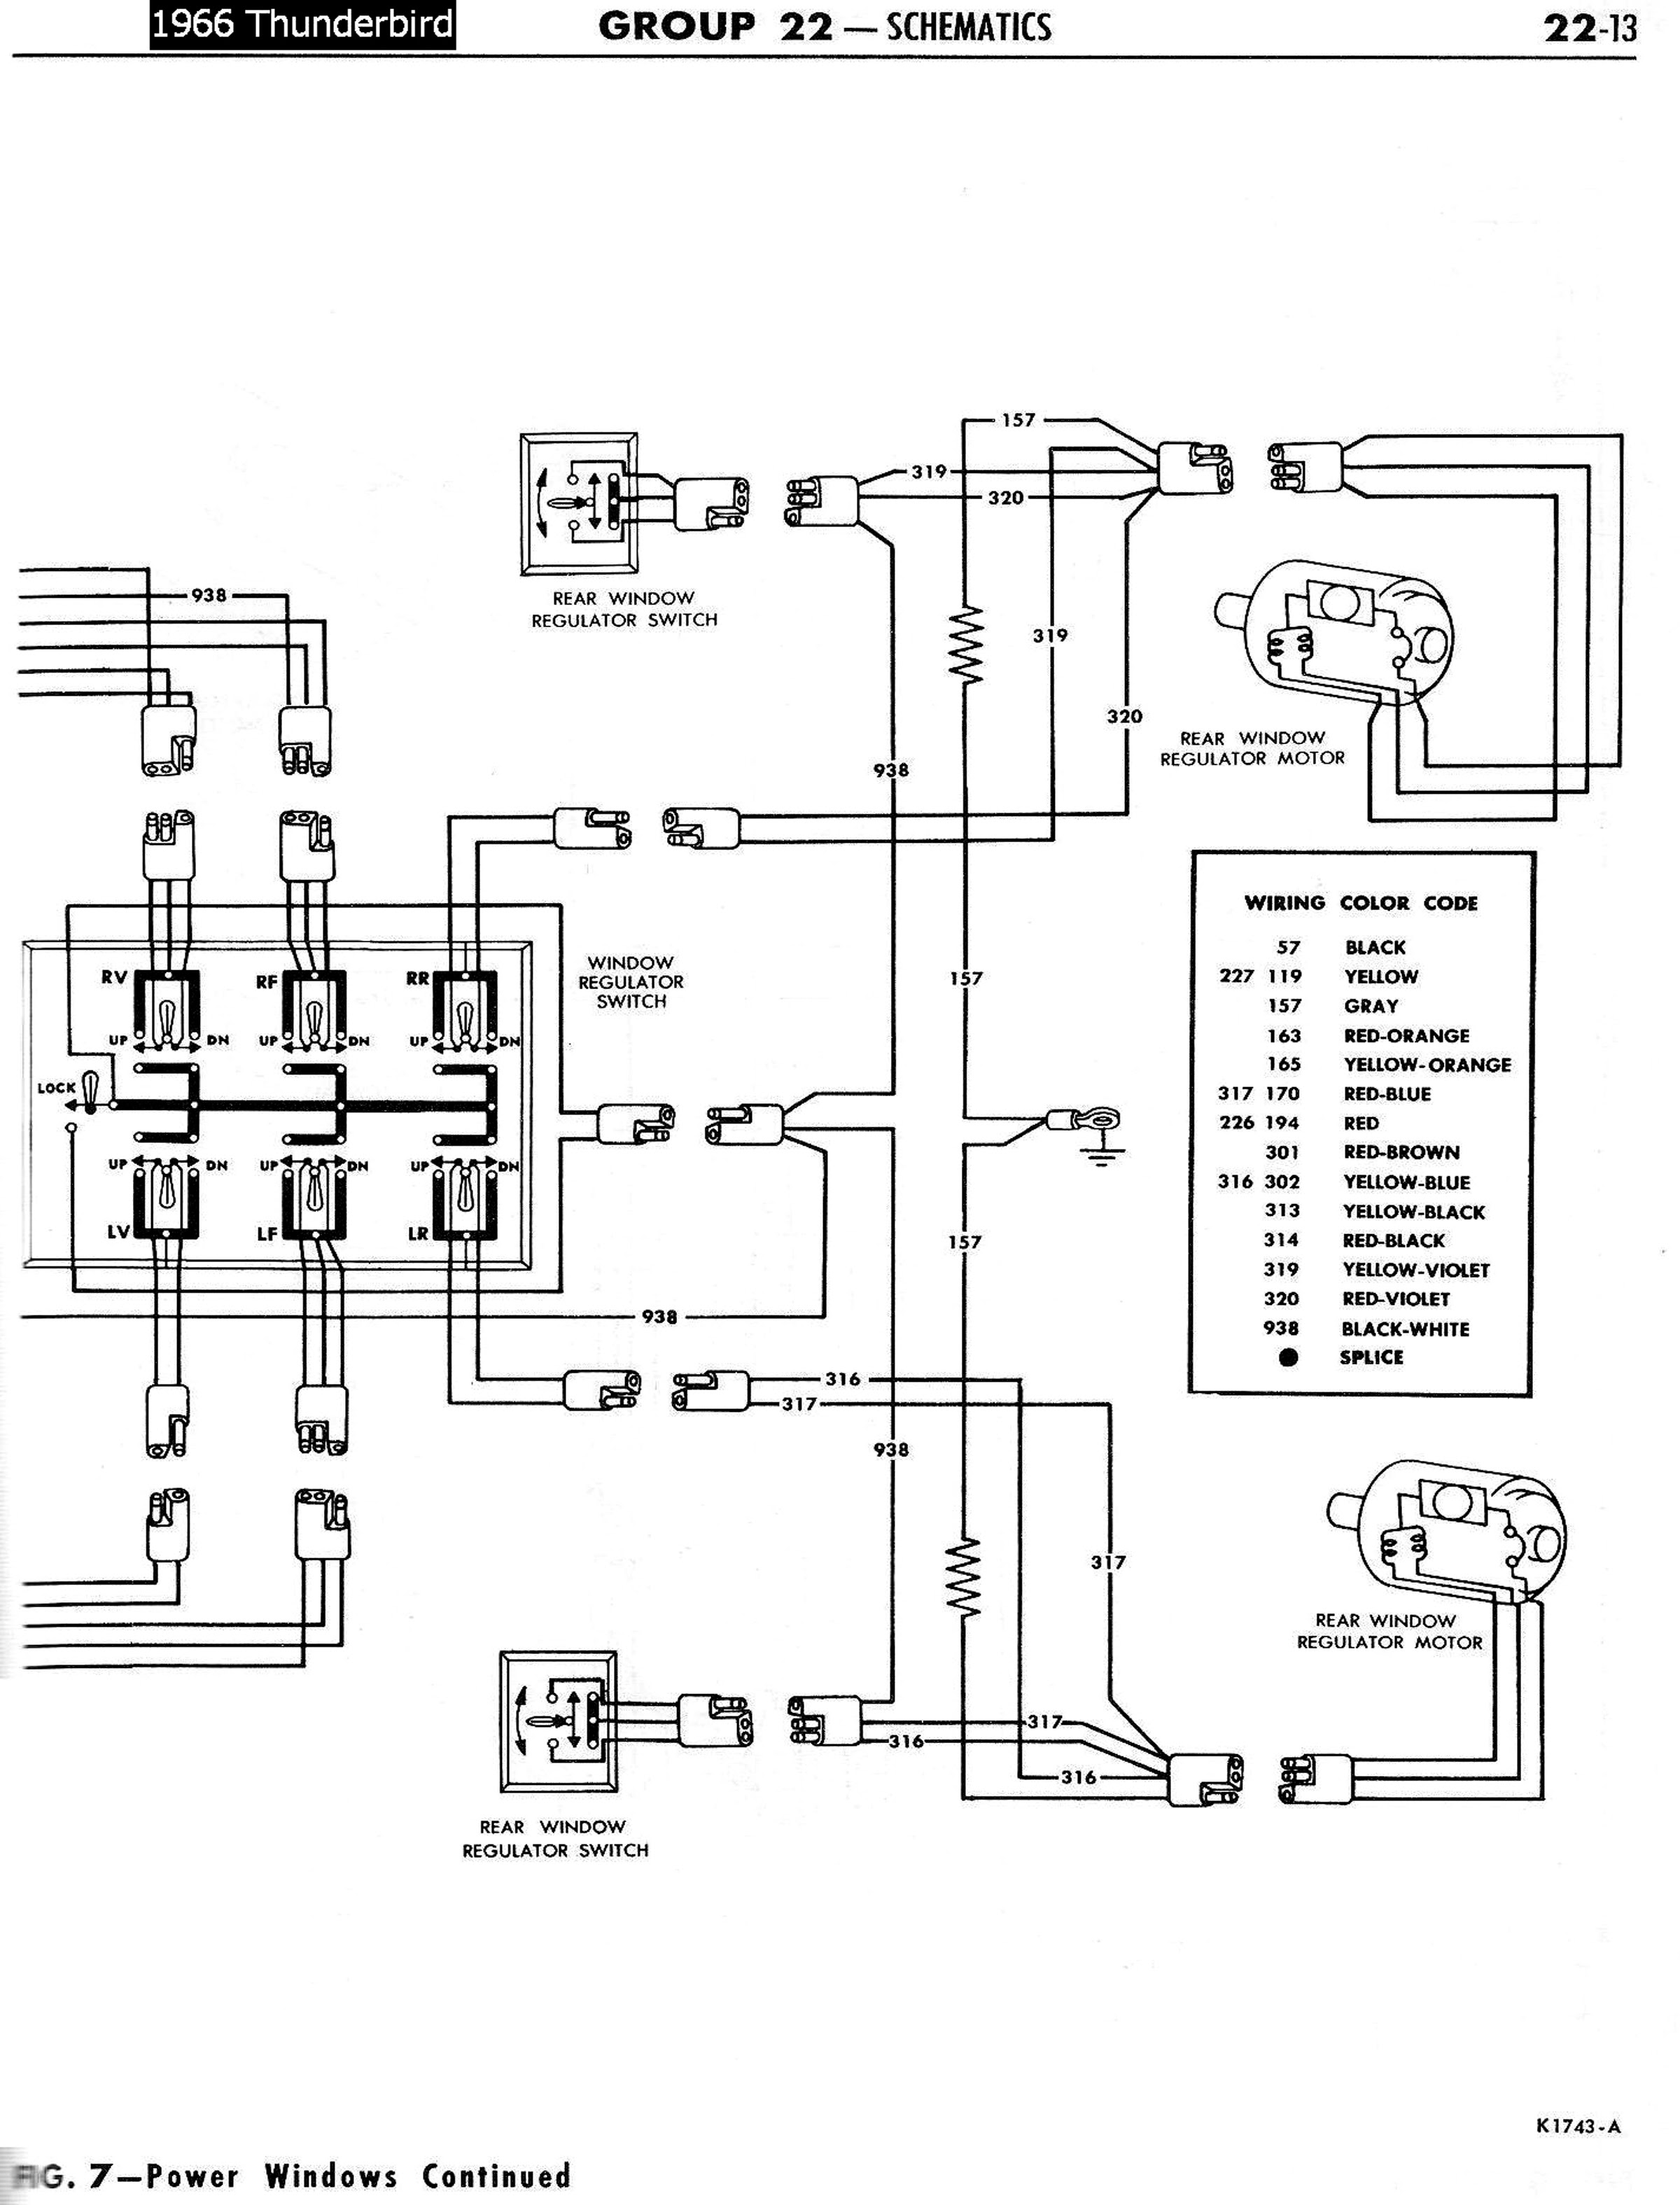 Diagram Ford Thunderbird Coil Diagram Full Version Hd Quality Coil Diagram Pvdiagramxlusby Achatsenchine Fr